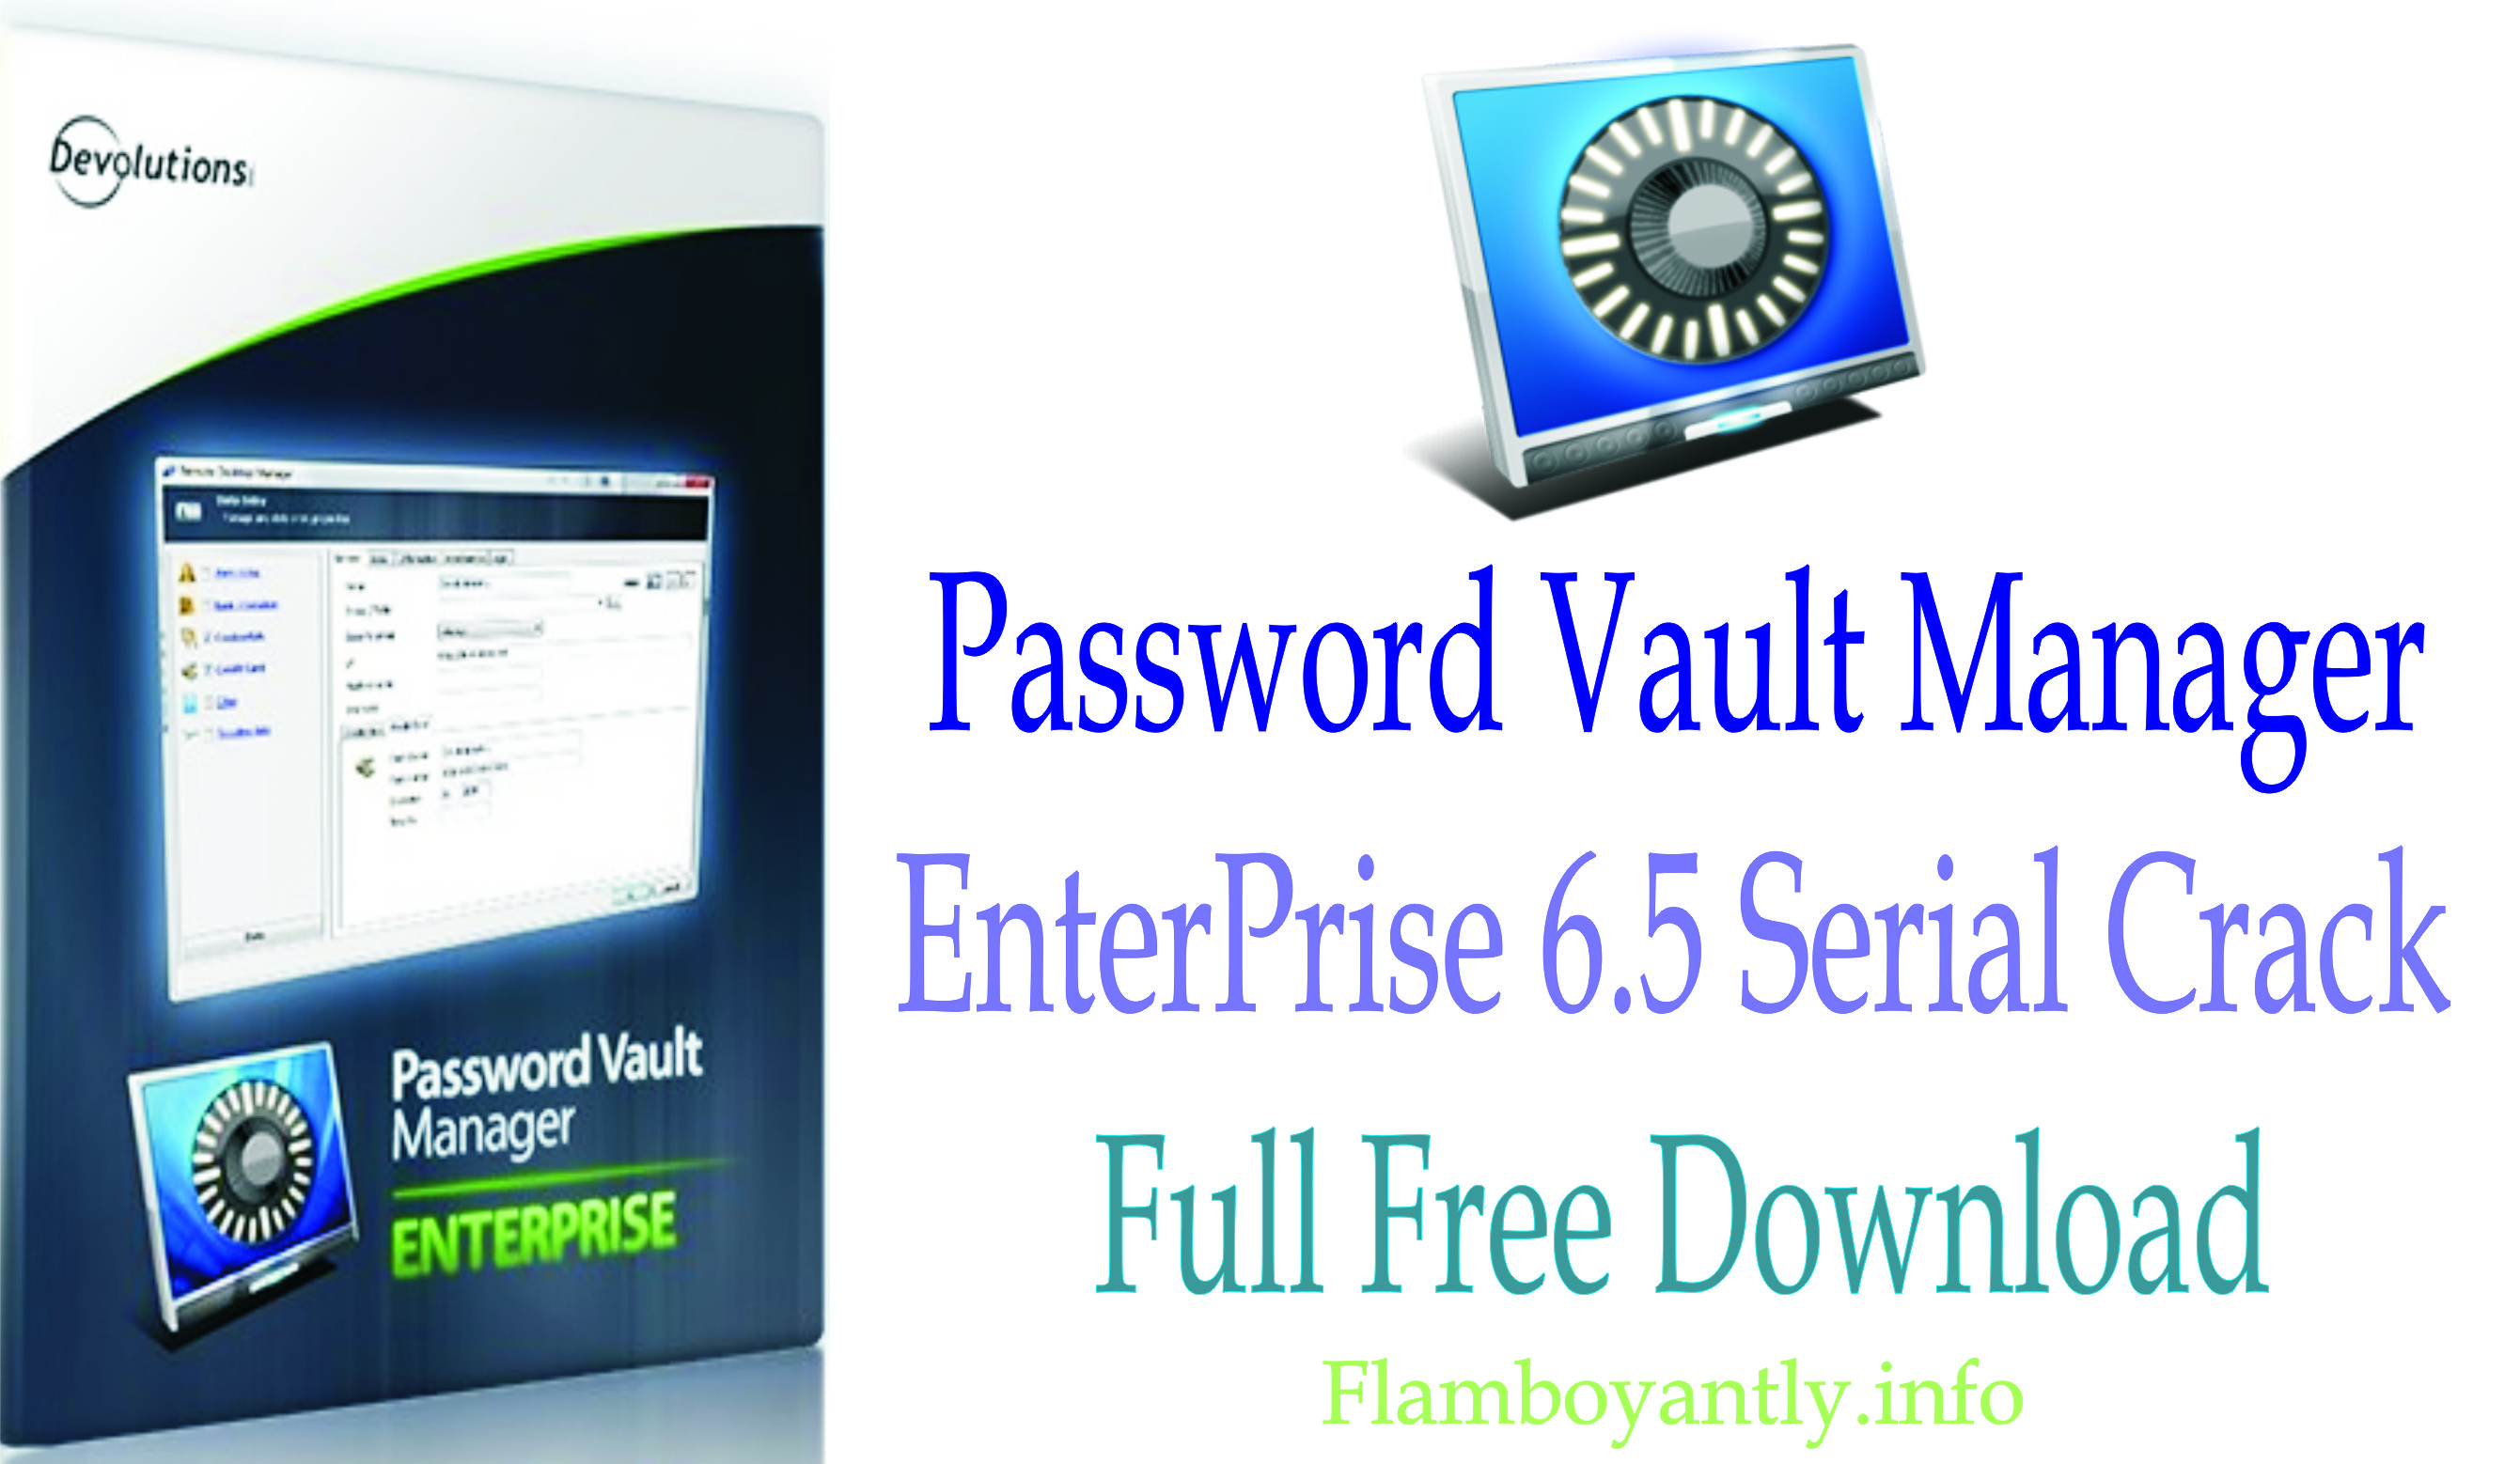 Password Vault Manager EnterPrise 6.5 Serial Crack Full Free Download